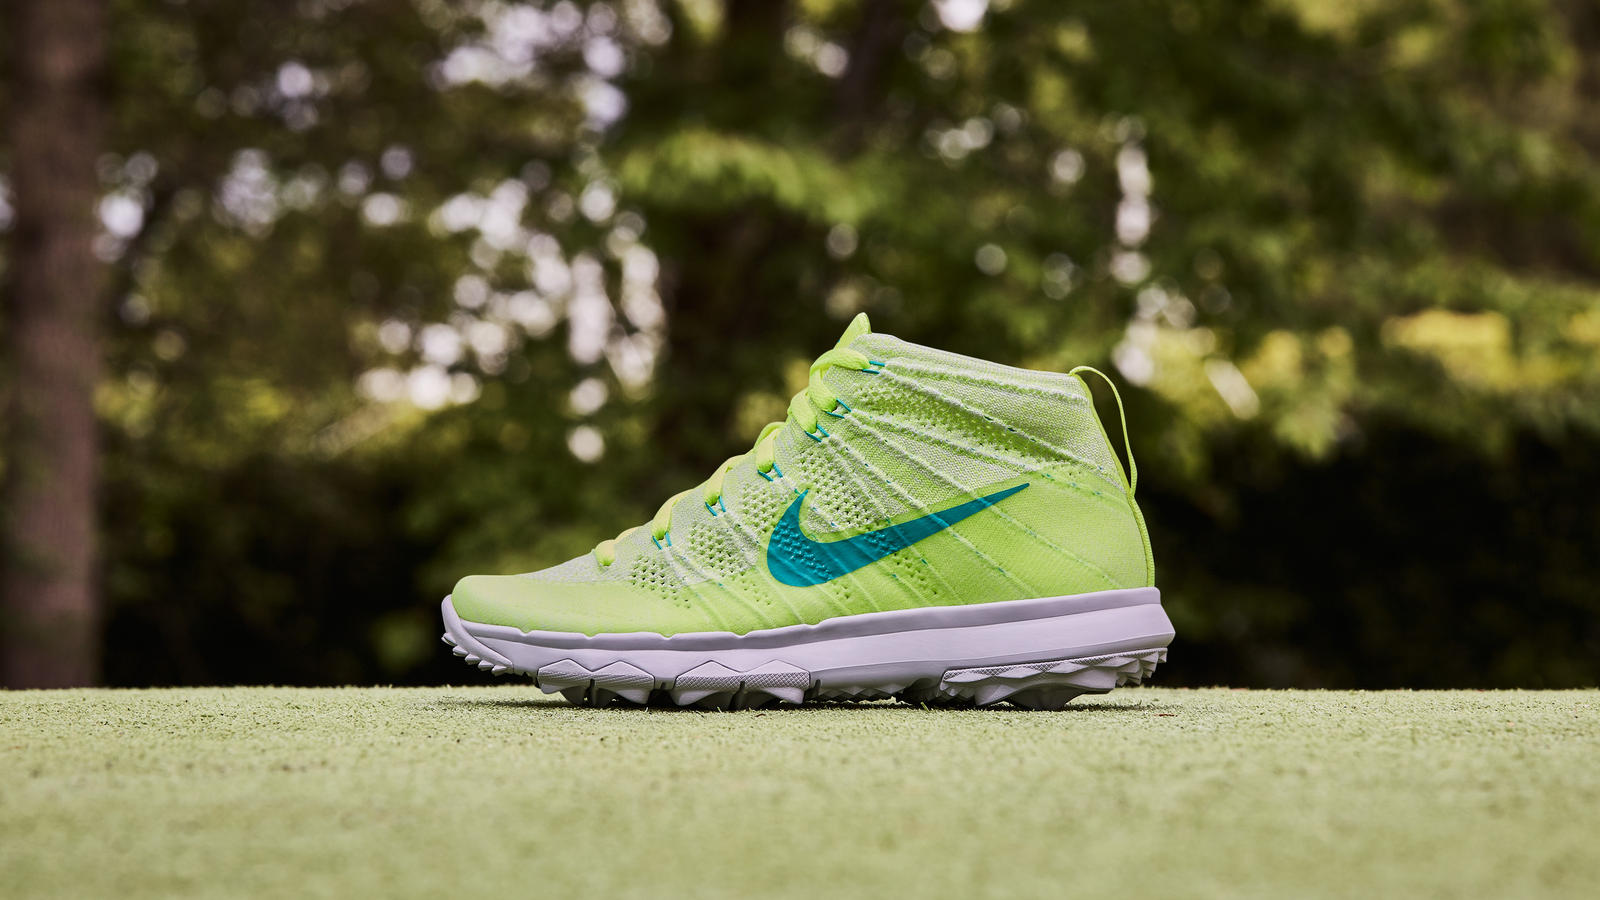 Nike news sneaker feed volt flyknit golf 0392 v1 hd 1600